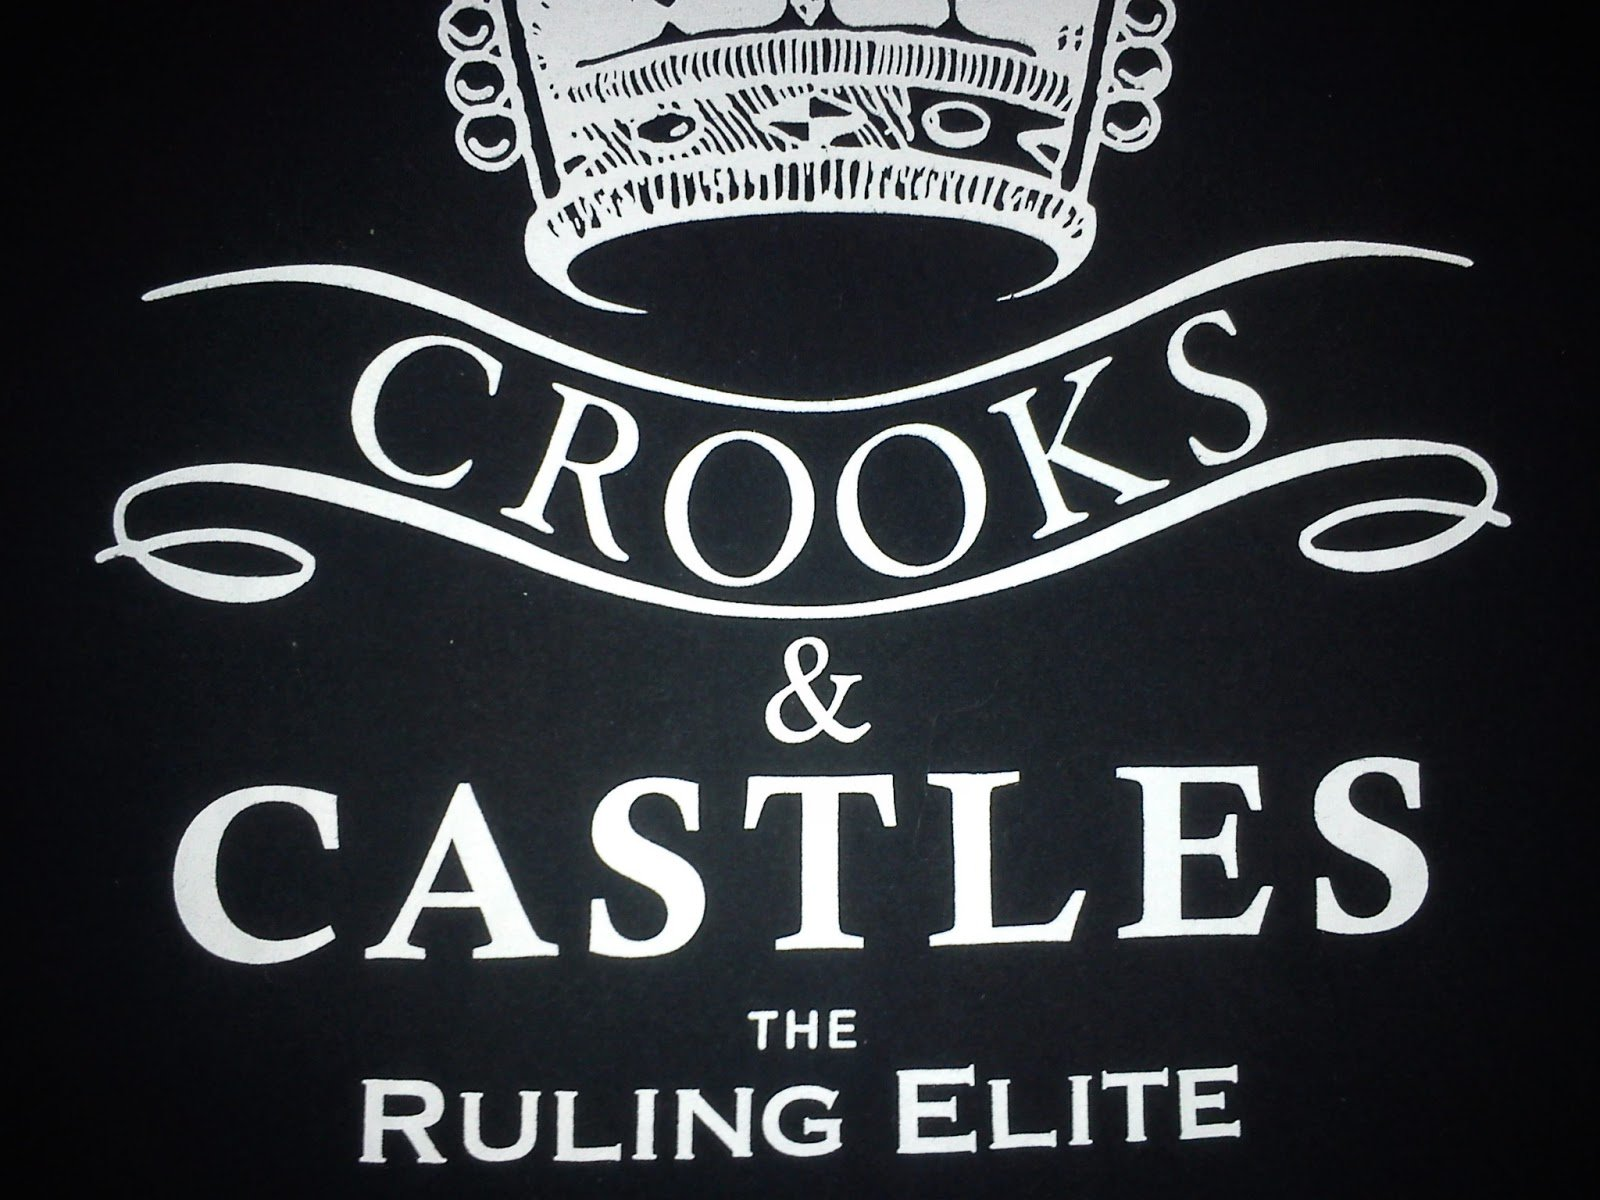 Crooks And Castles Wallpaper Crooks and castles t shirt 1600x1200